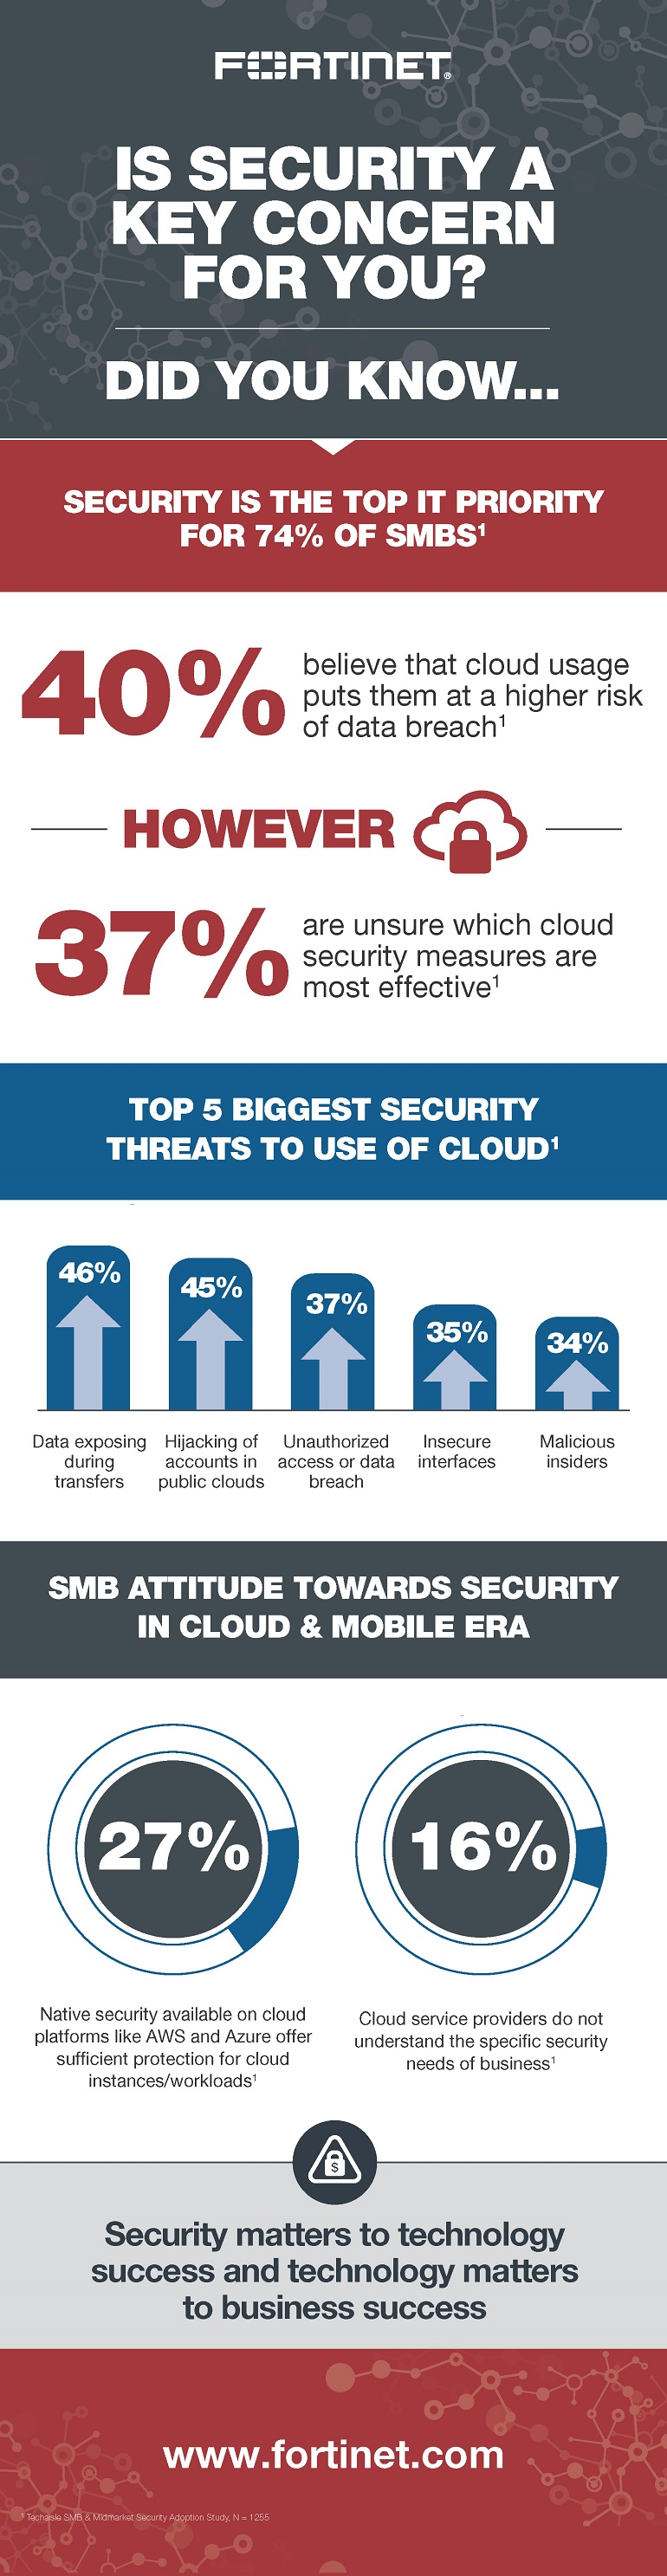 Is Security a Key Concern for You? Infographic